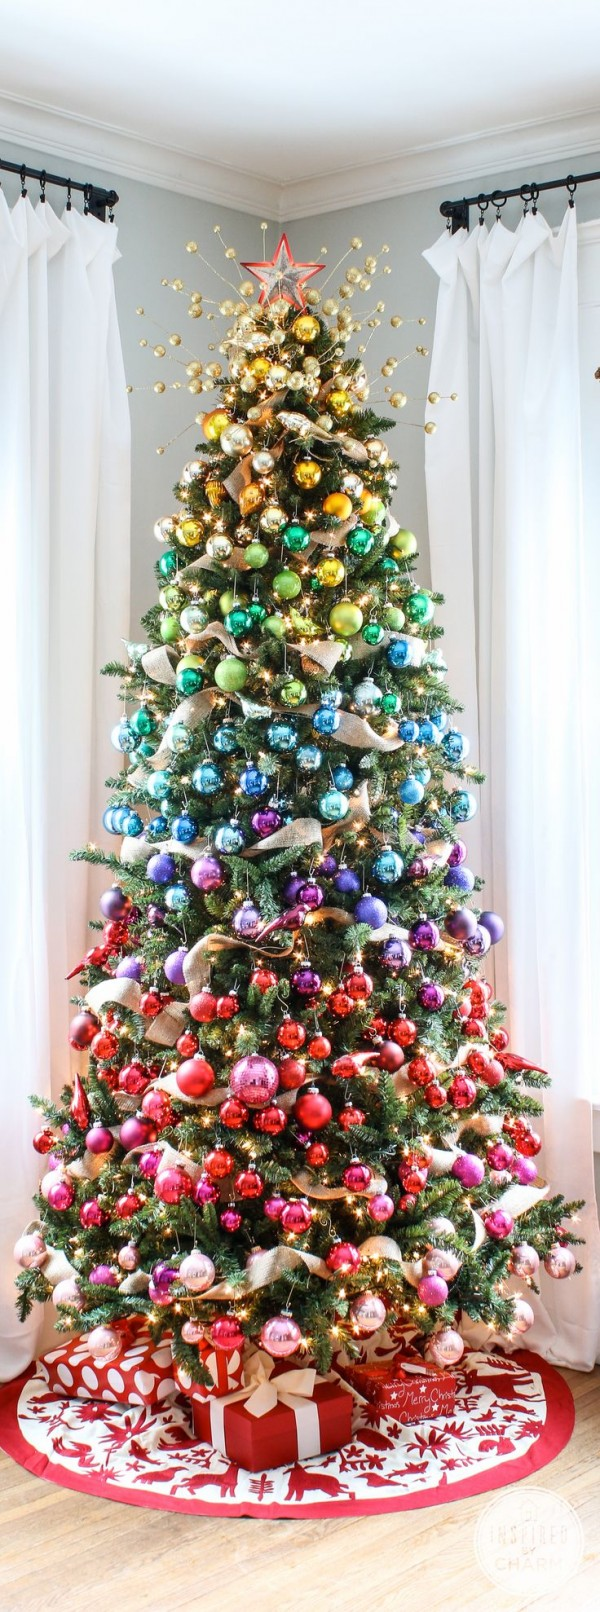 A Colorful Christmas Tree